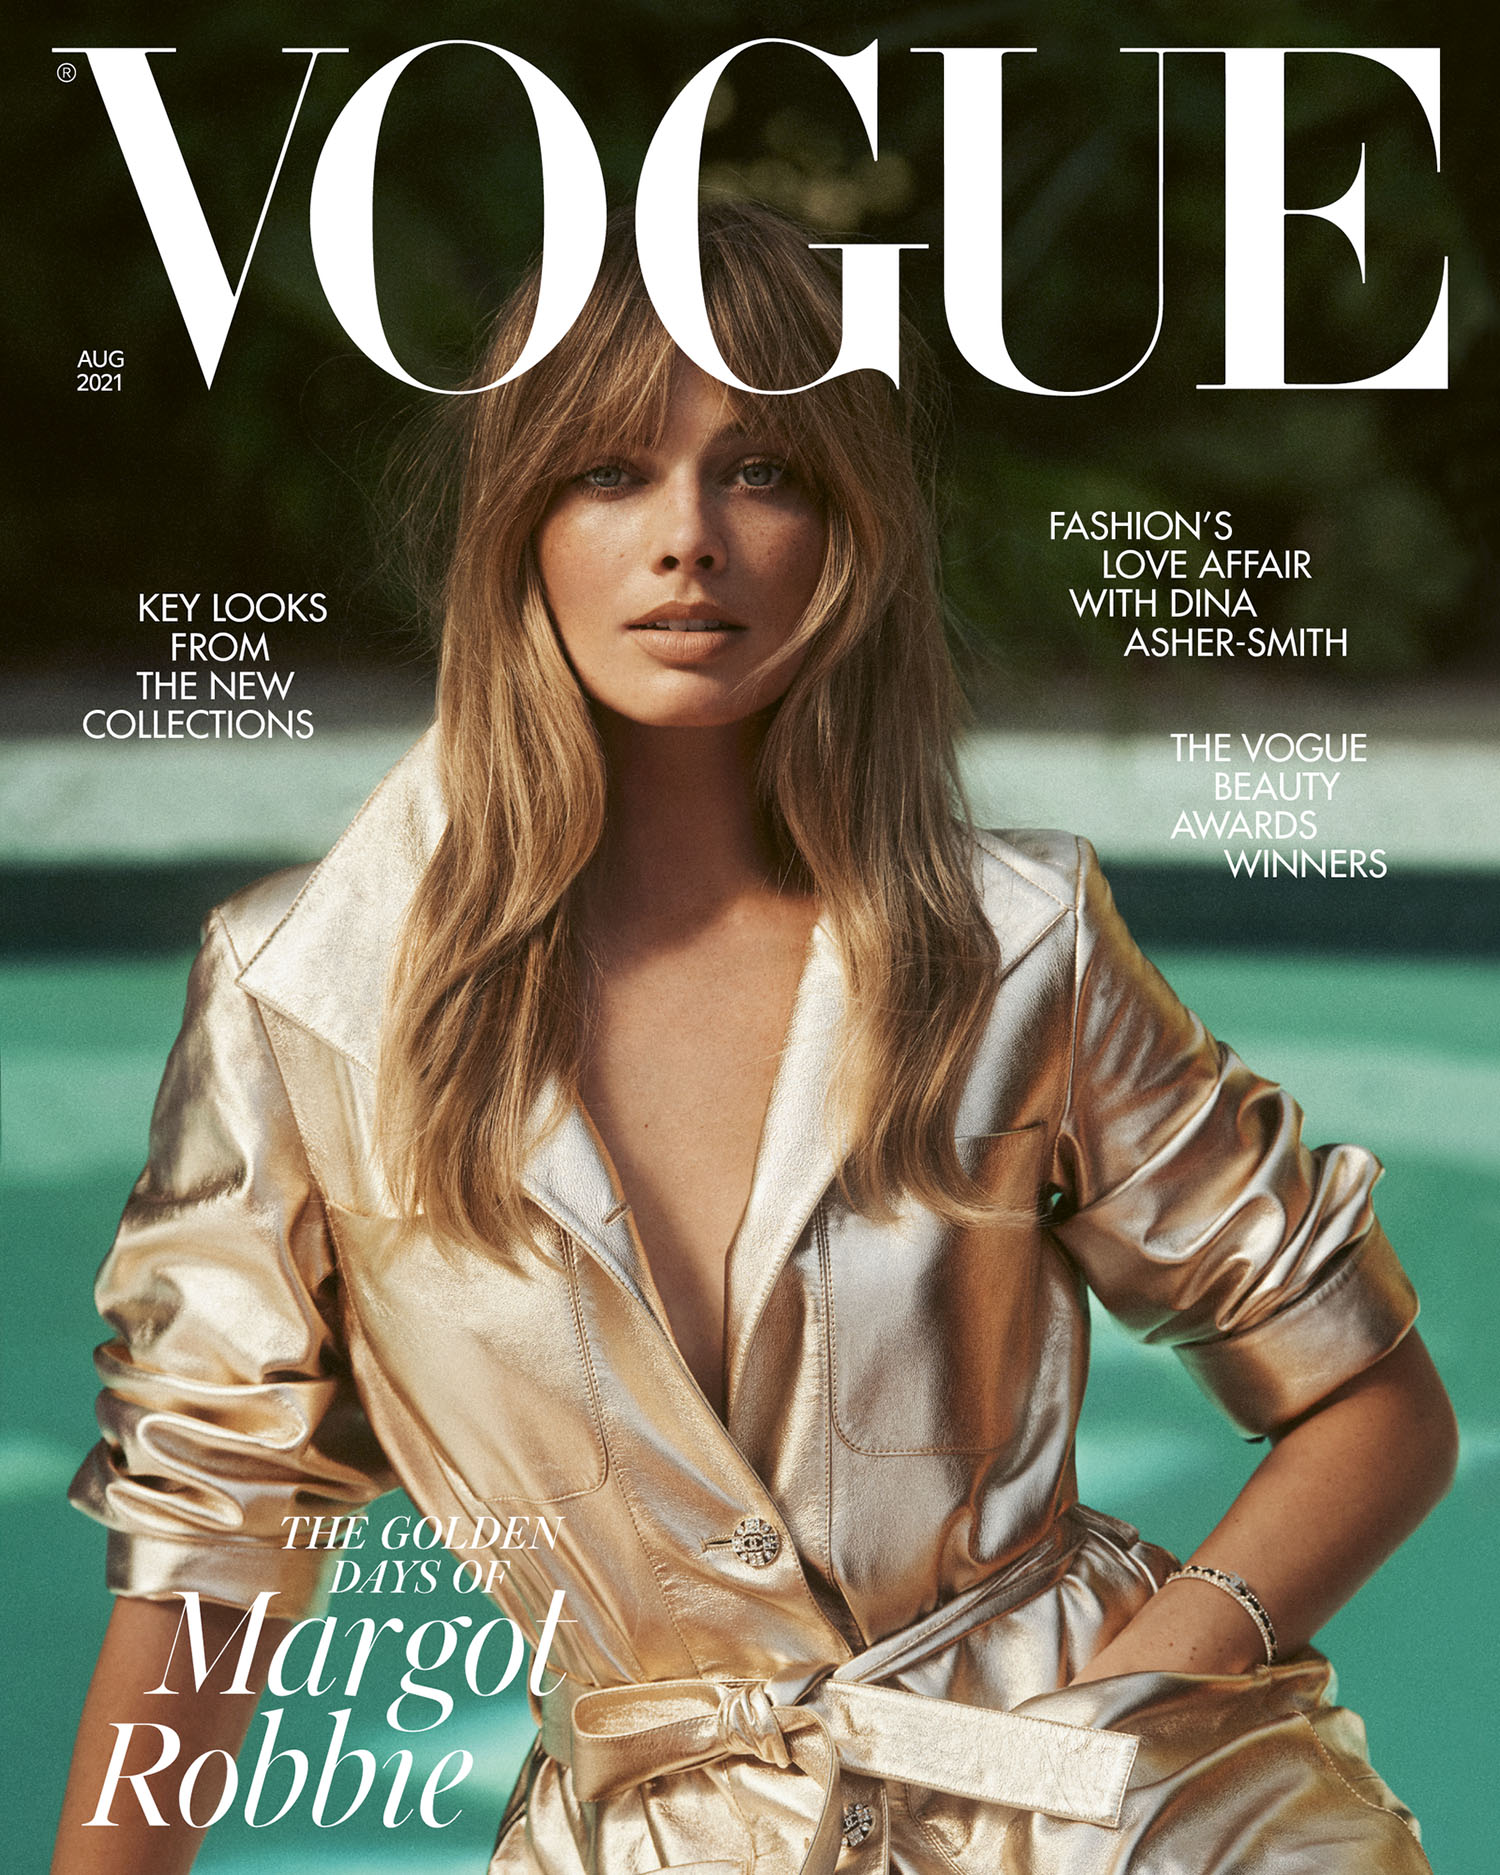 Margot Robbie covers British Vogue August 2021 by Lachlan Bailey